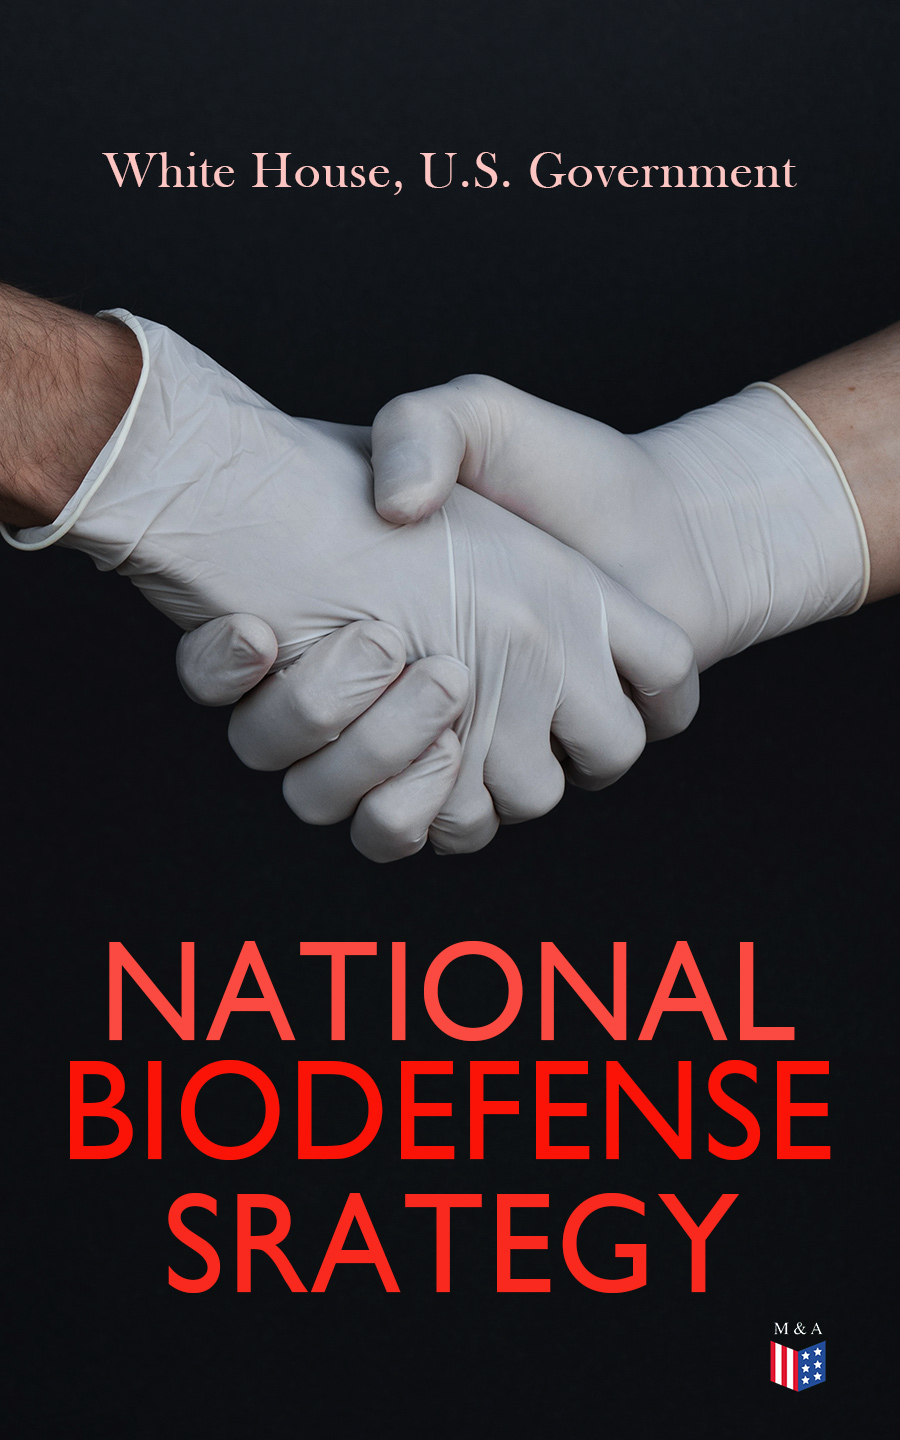 White House National Biodefense Strategy hearings before the subcommittee of the committee on appropriations united states senate on the bill h r 8347 making appropriations for the legislative executive and judicial expenses of the government for the fiscal year ending june 30 1